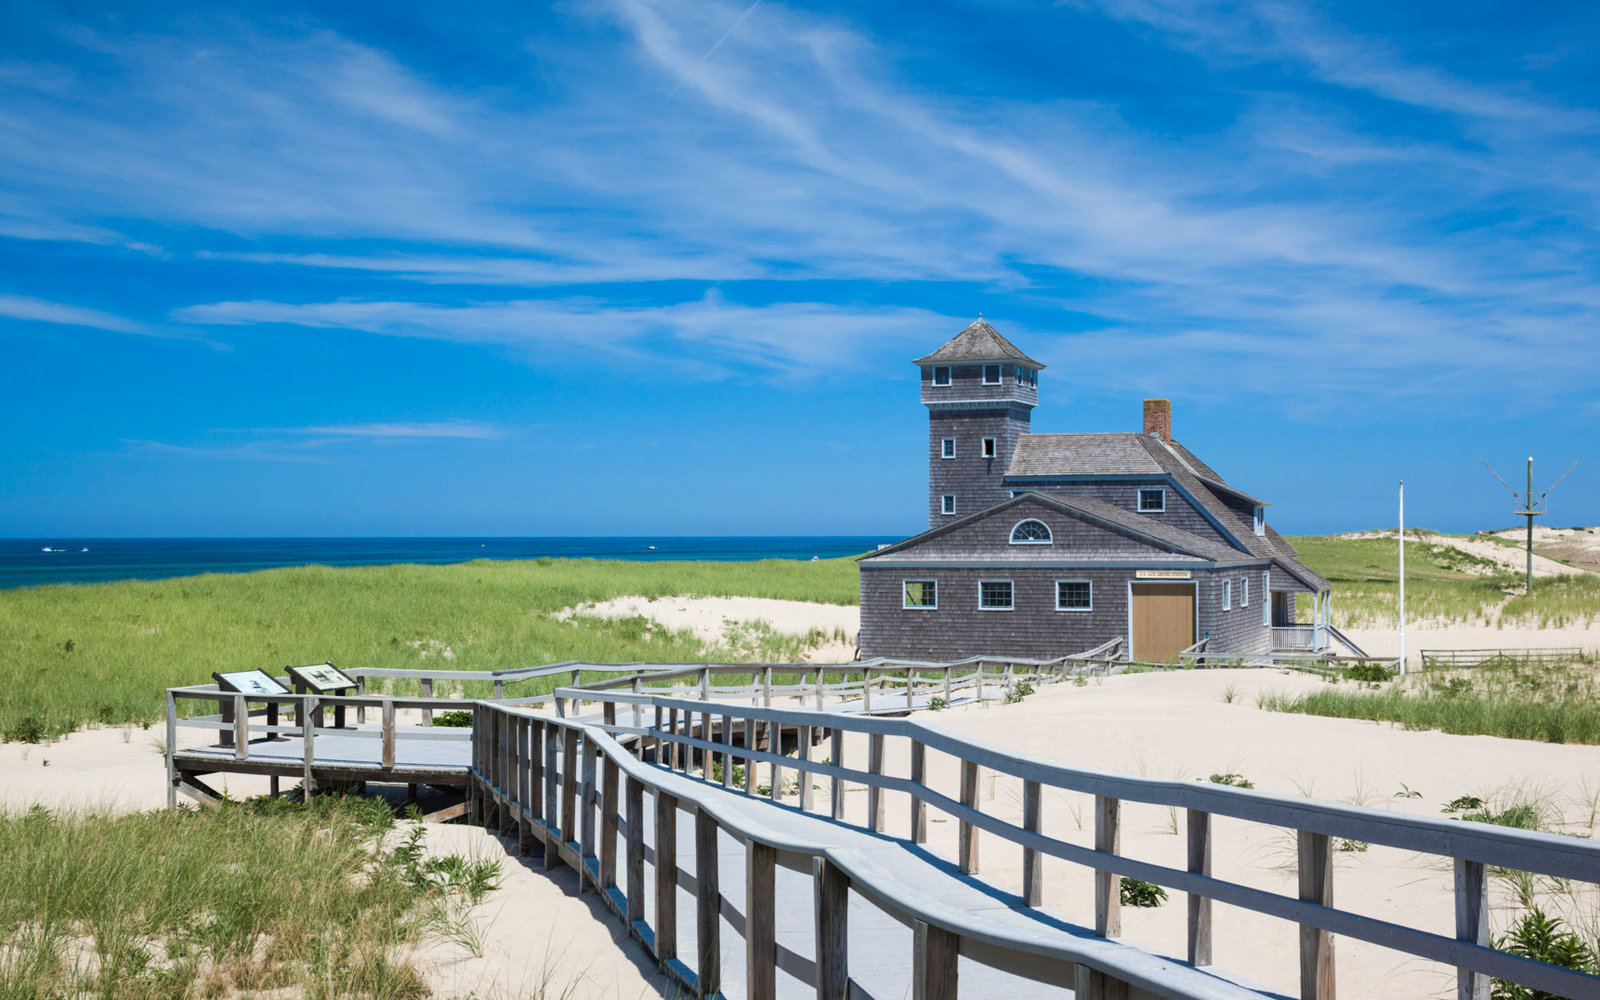 Superb How To Get To Cape Cod Part - 1: 13 Ways To Perfect Your Next Trip To Cape Cod